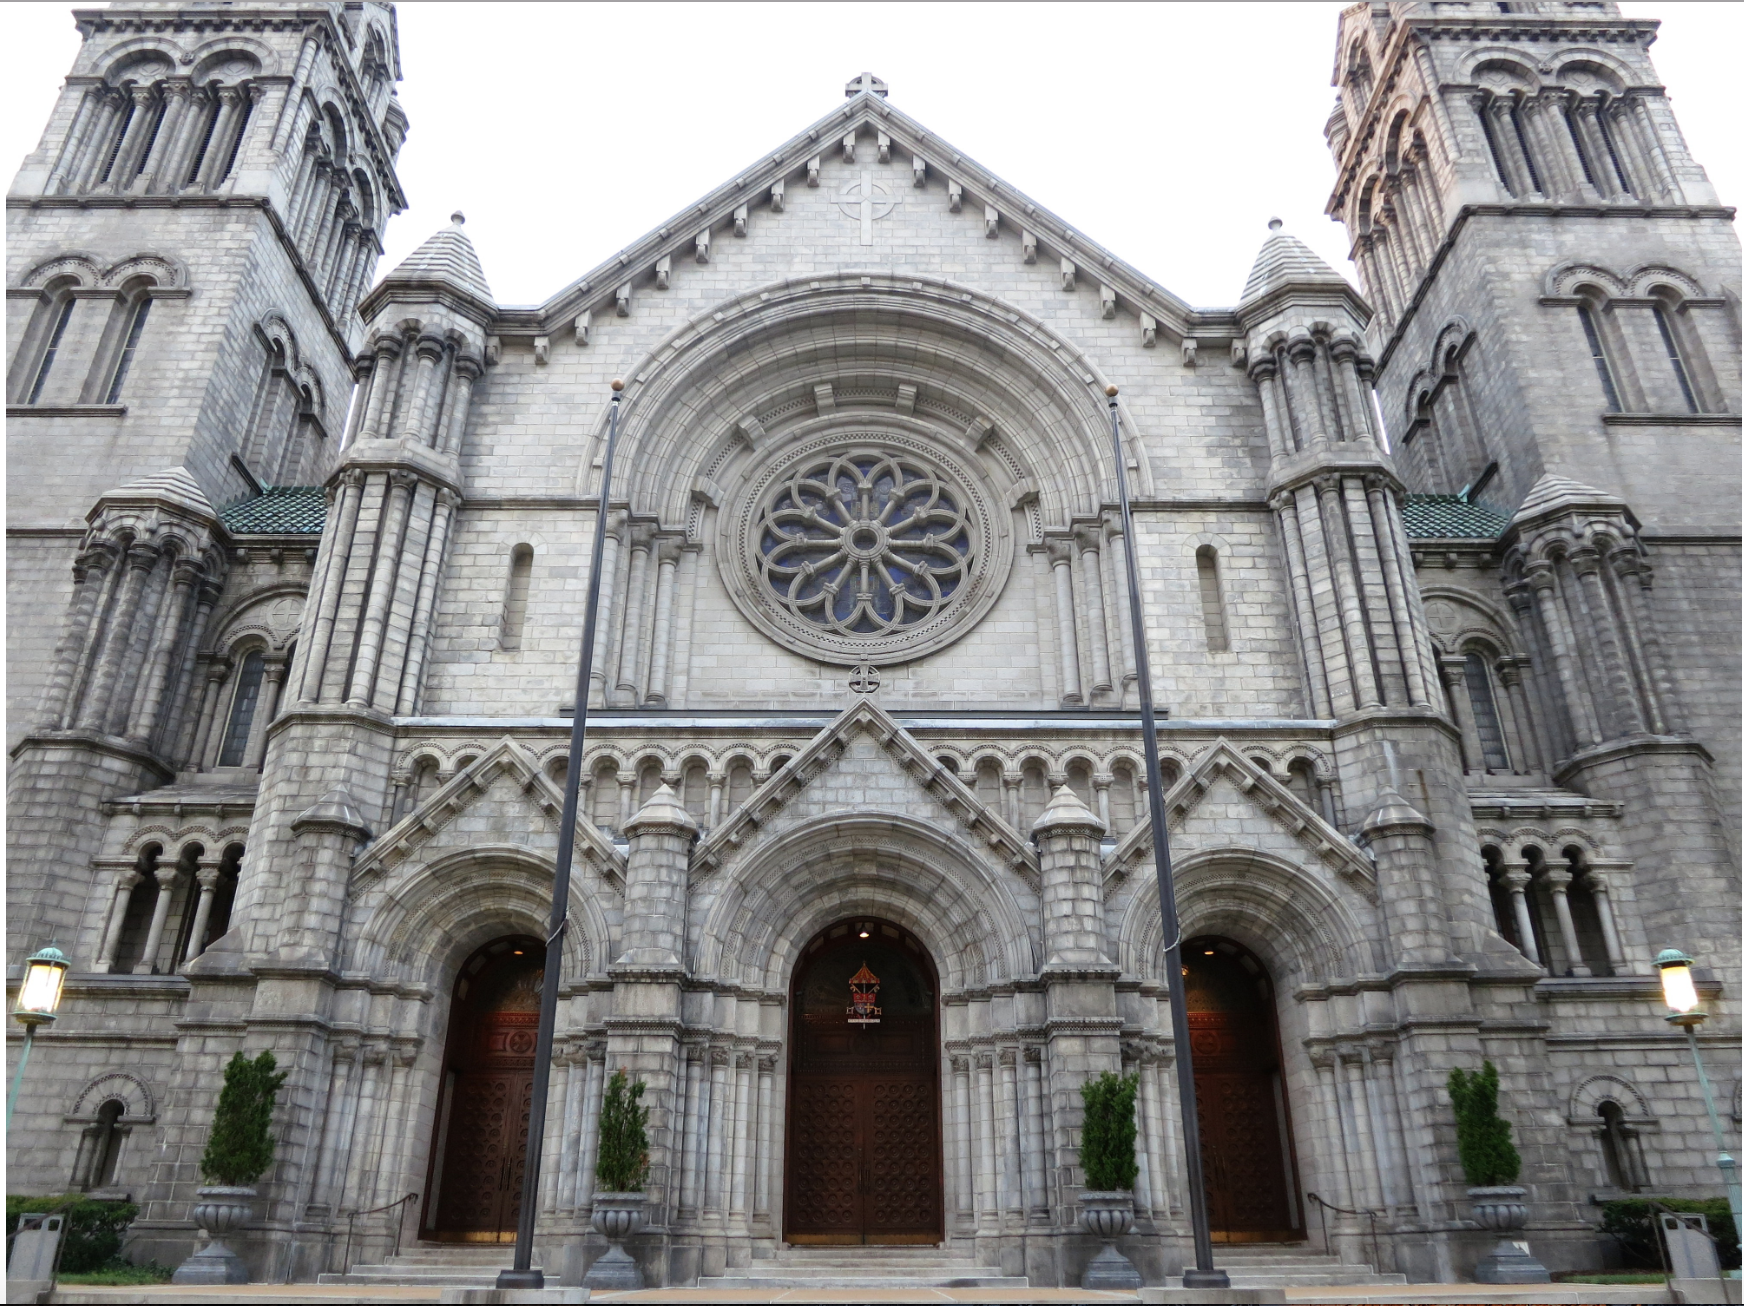 Cathedral Basilica of St. Louis. Photo by Ena Kovac, March 23, 2017.